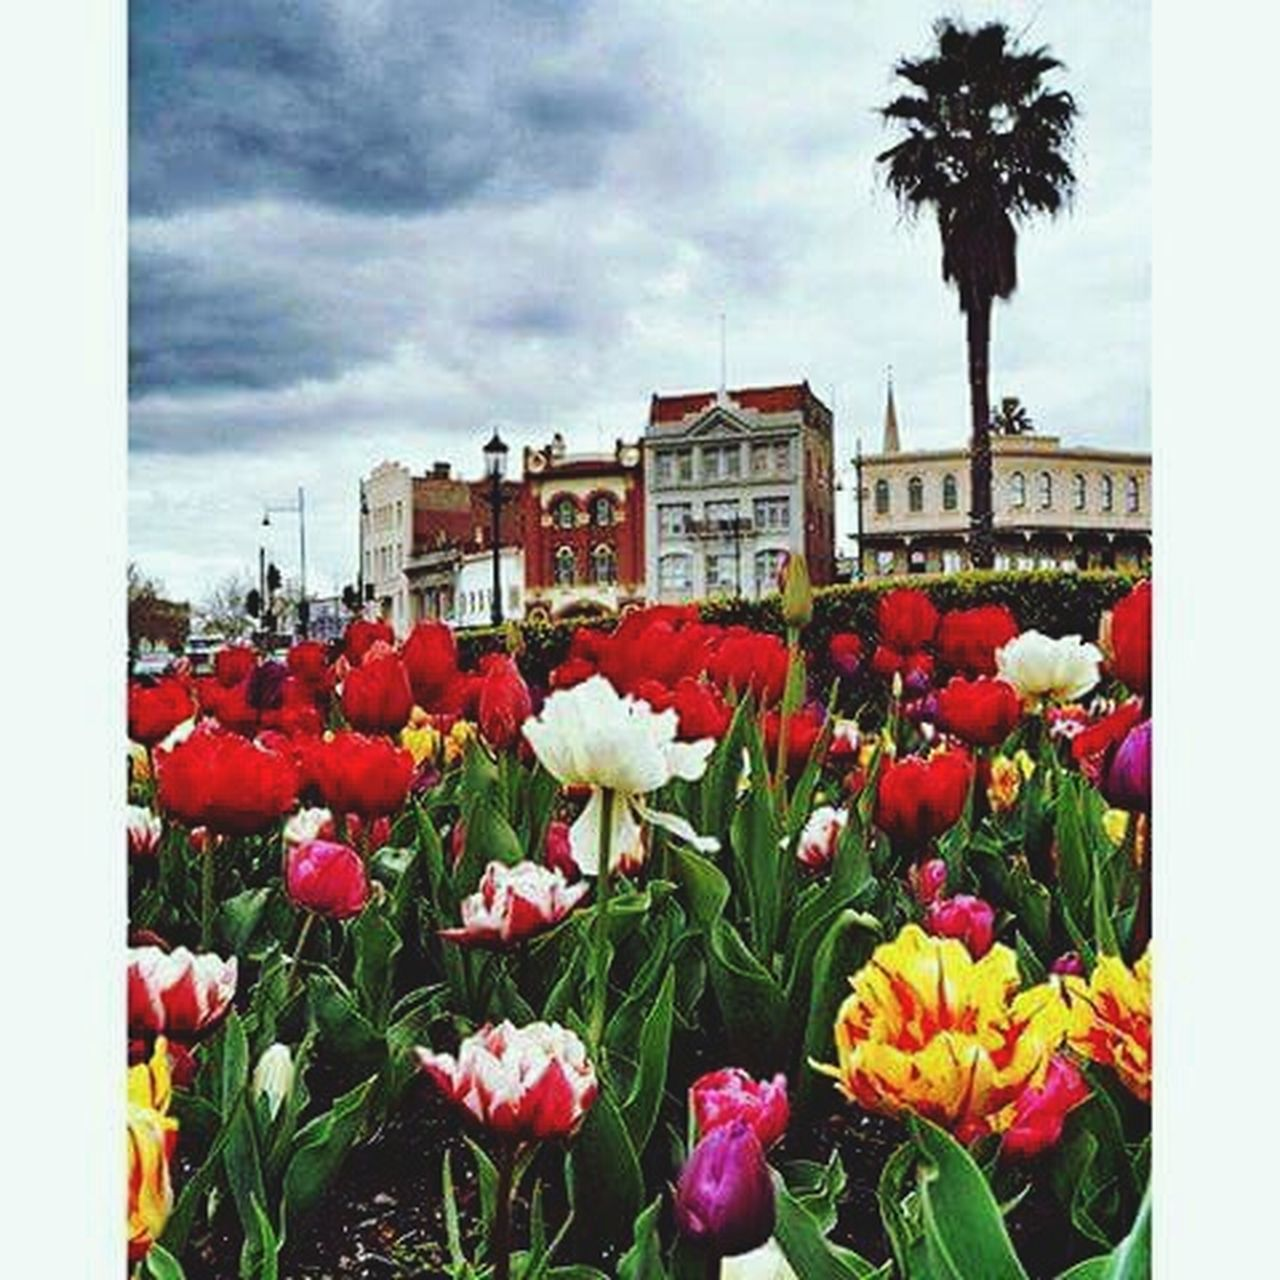 flower, fragility, nature, freshness, beauty in nature, petal, red, growth, flower head, multi colored, outdoors, cloud - sky, day, tulip, no people, sky, plant, blooming, building exterior, springtime, architecture, close-up